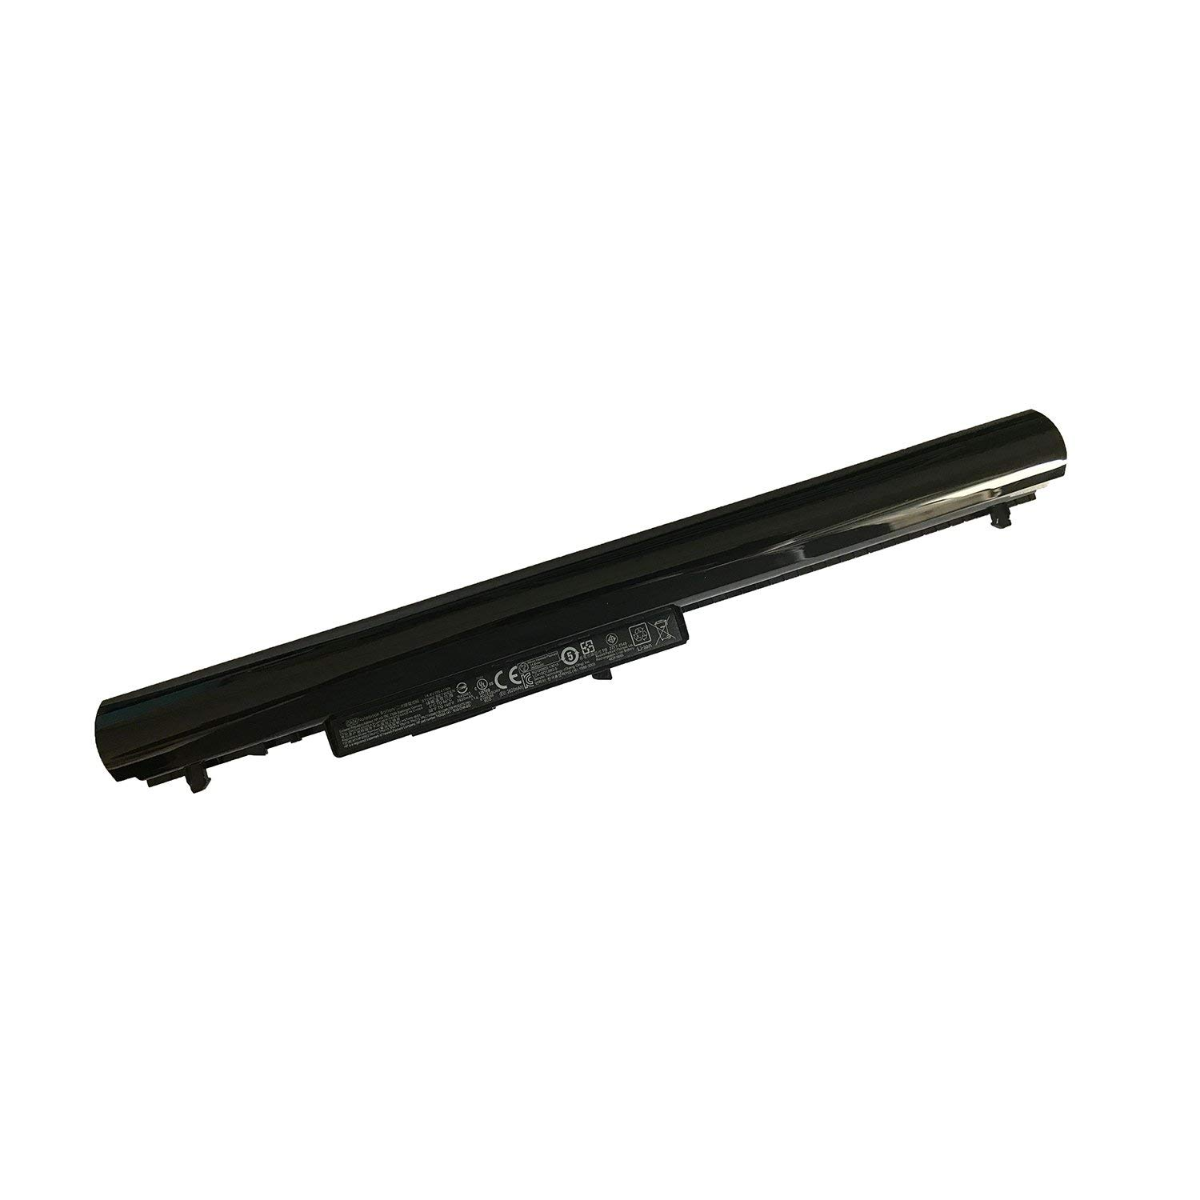 Μπαταρία Laptop - Battery for HP 15-R003EE 15-R003EI 15-R003NA 15-R003NC 15-R003NE 15-R003NG 15-R003NK 15-R003NP 15-R003NS 15-R003SE 15-R003SI OEM Υψηλής ποιότητας (Κωδ.1-BAT0002)